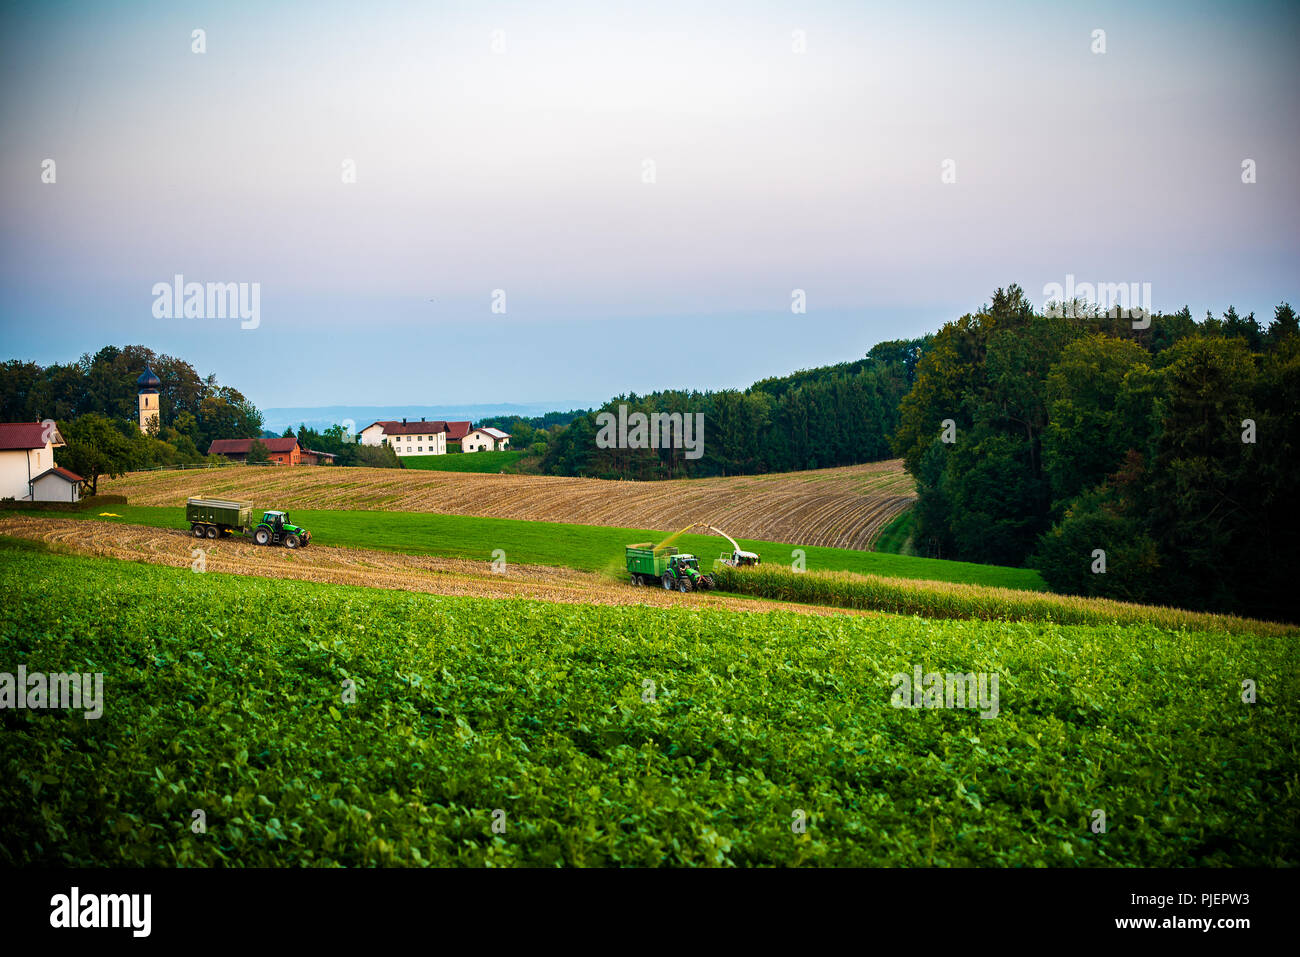 Marktl,Germany-August 5,2018: farmers bring in the corn crop early in the evening. - Stock Image